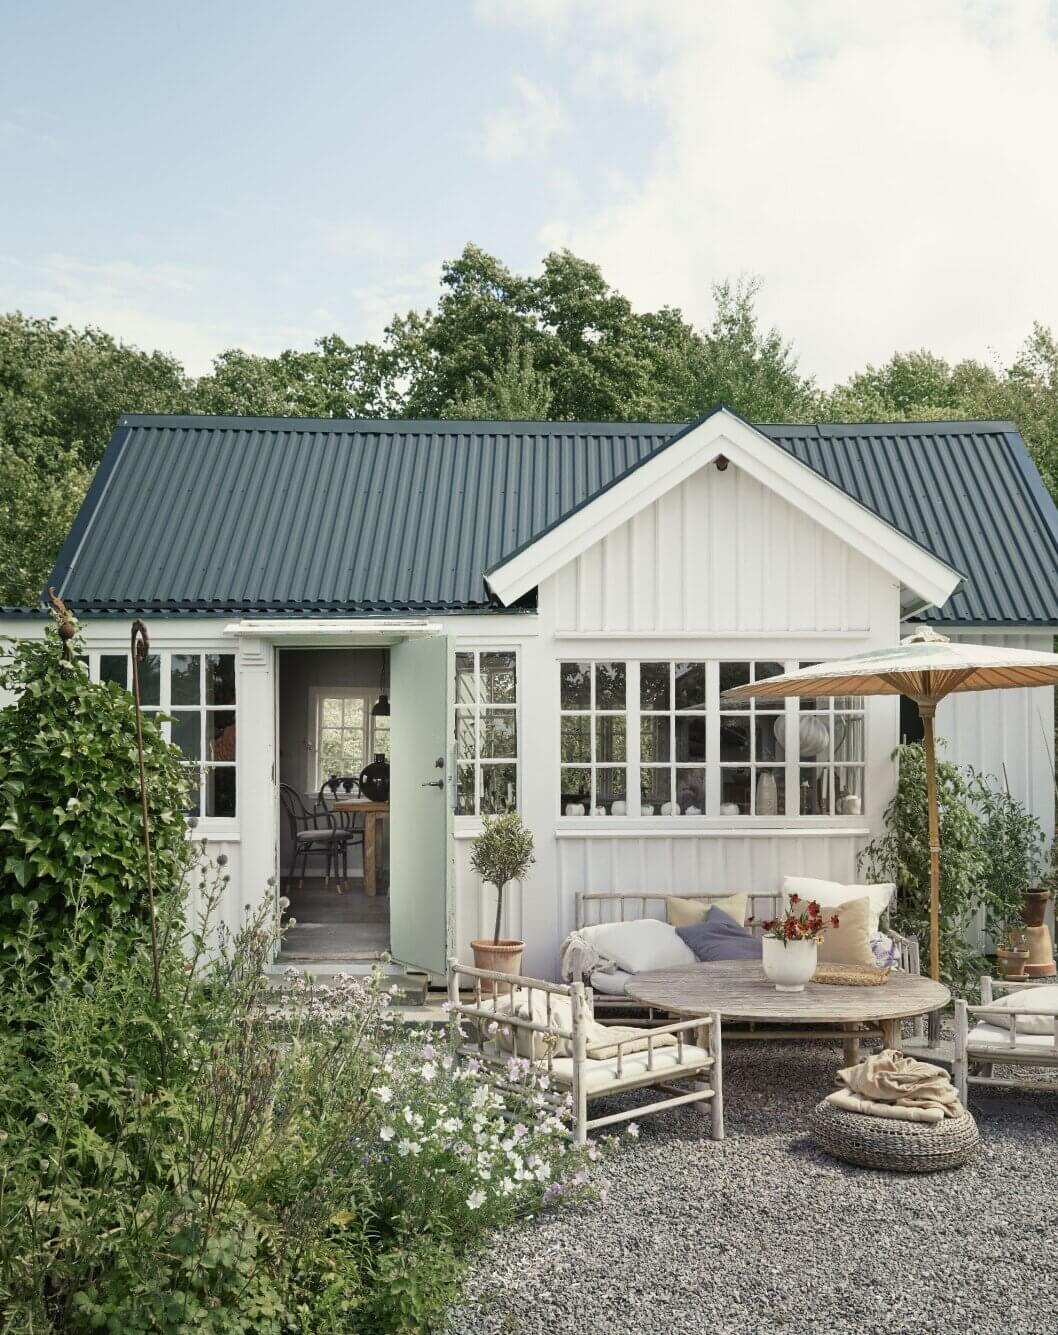 small-cottage-farmhouse-allotment-garden-recycled-nordroom